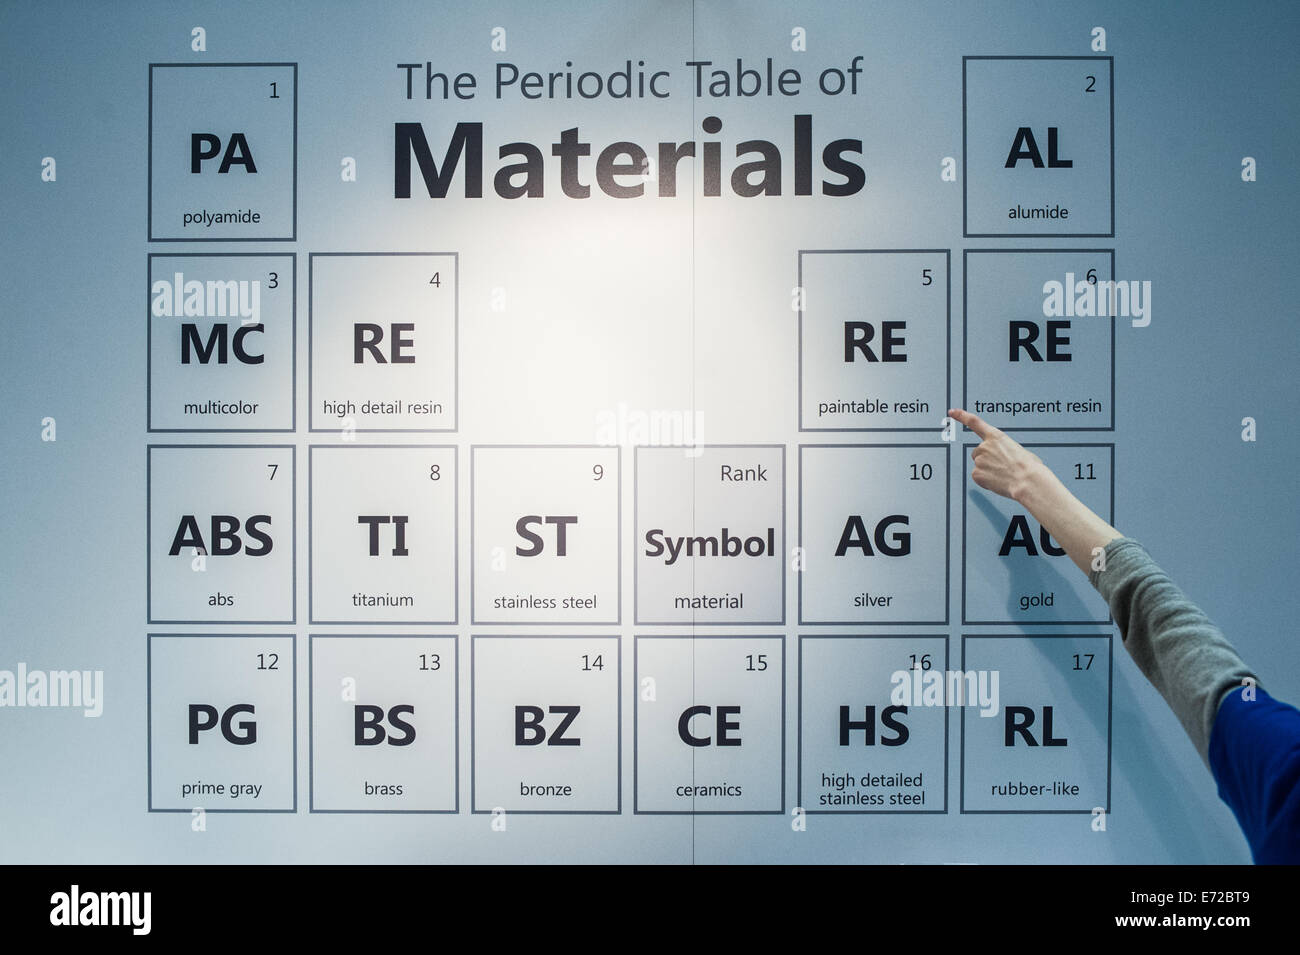 London uk 4th sep 2014 a woman points at a periodic table of london uk 4th sep 2014 a woman points at a periodic table of materials during the 3d printshow at the old billingsgate in london urtaz Gallery